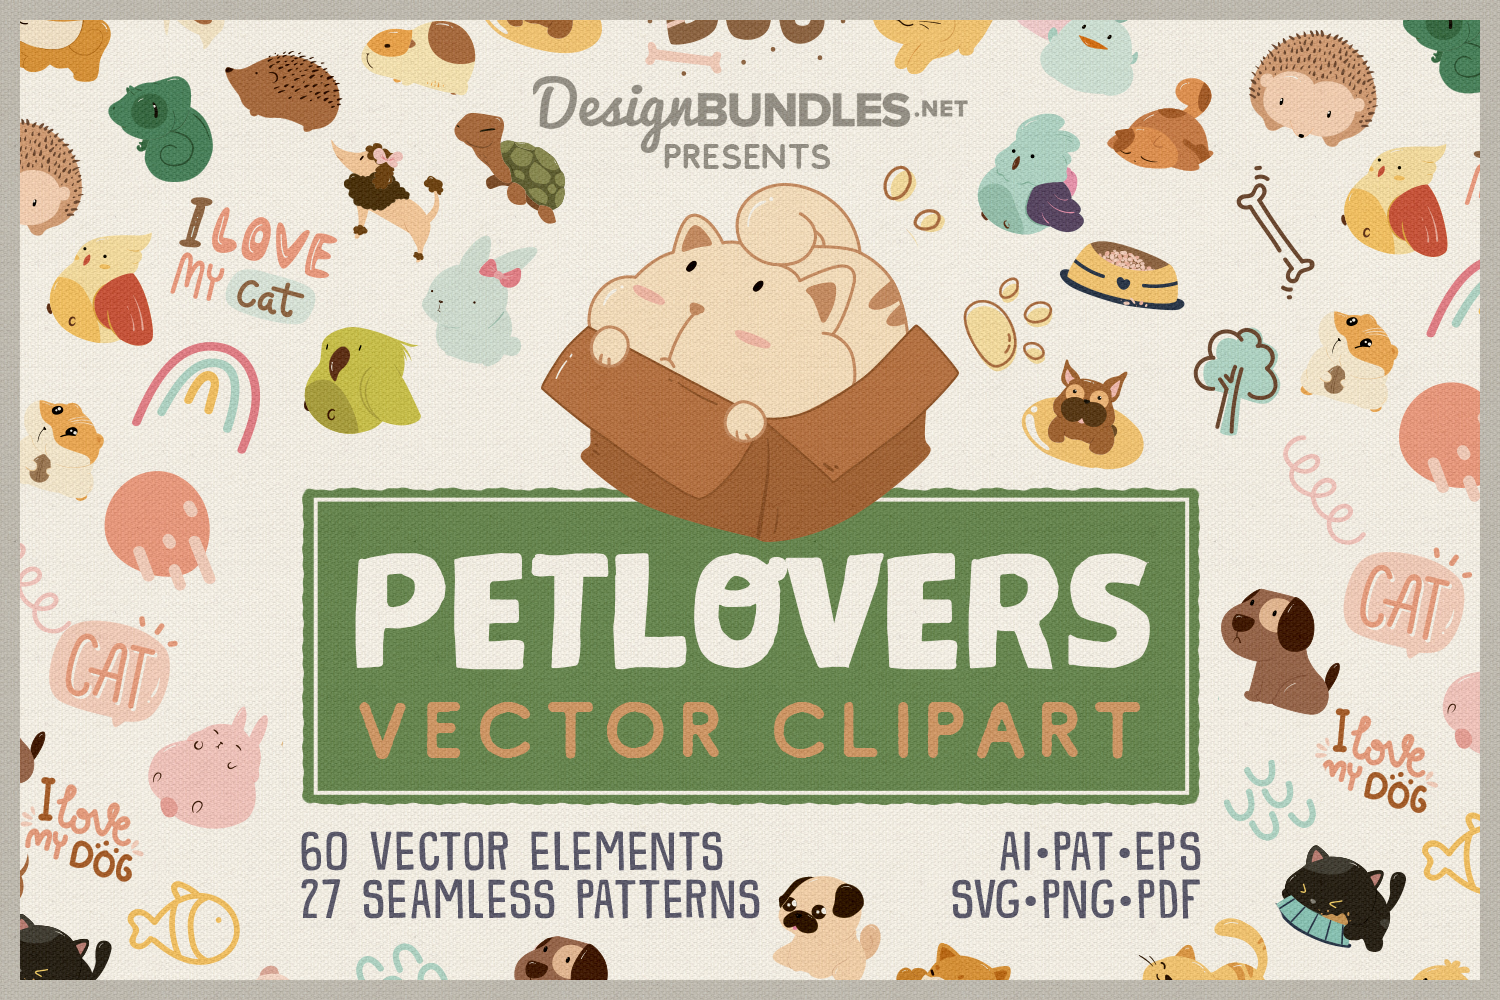 Pet Lovers Vector Clipart example image 1